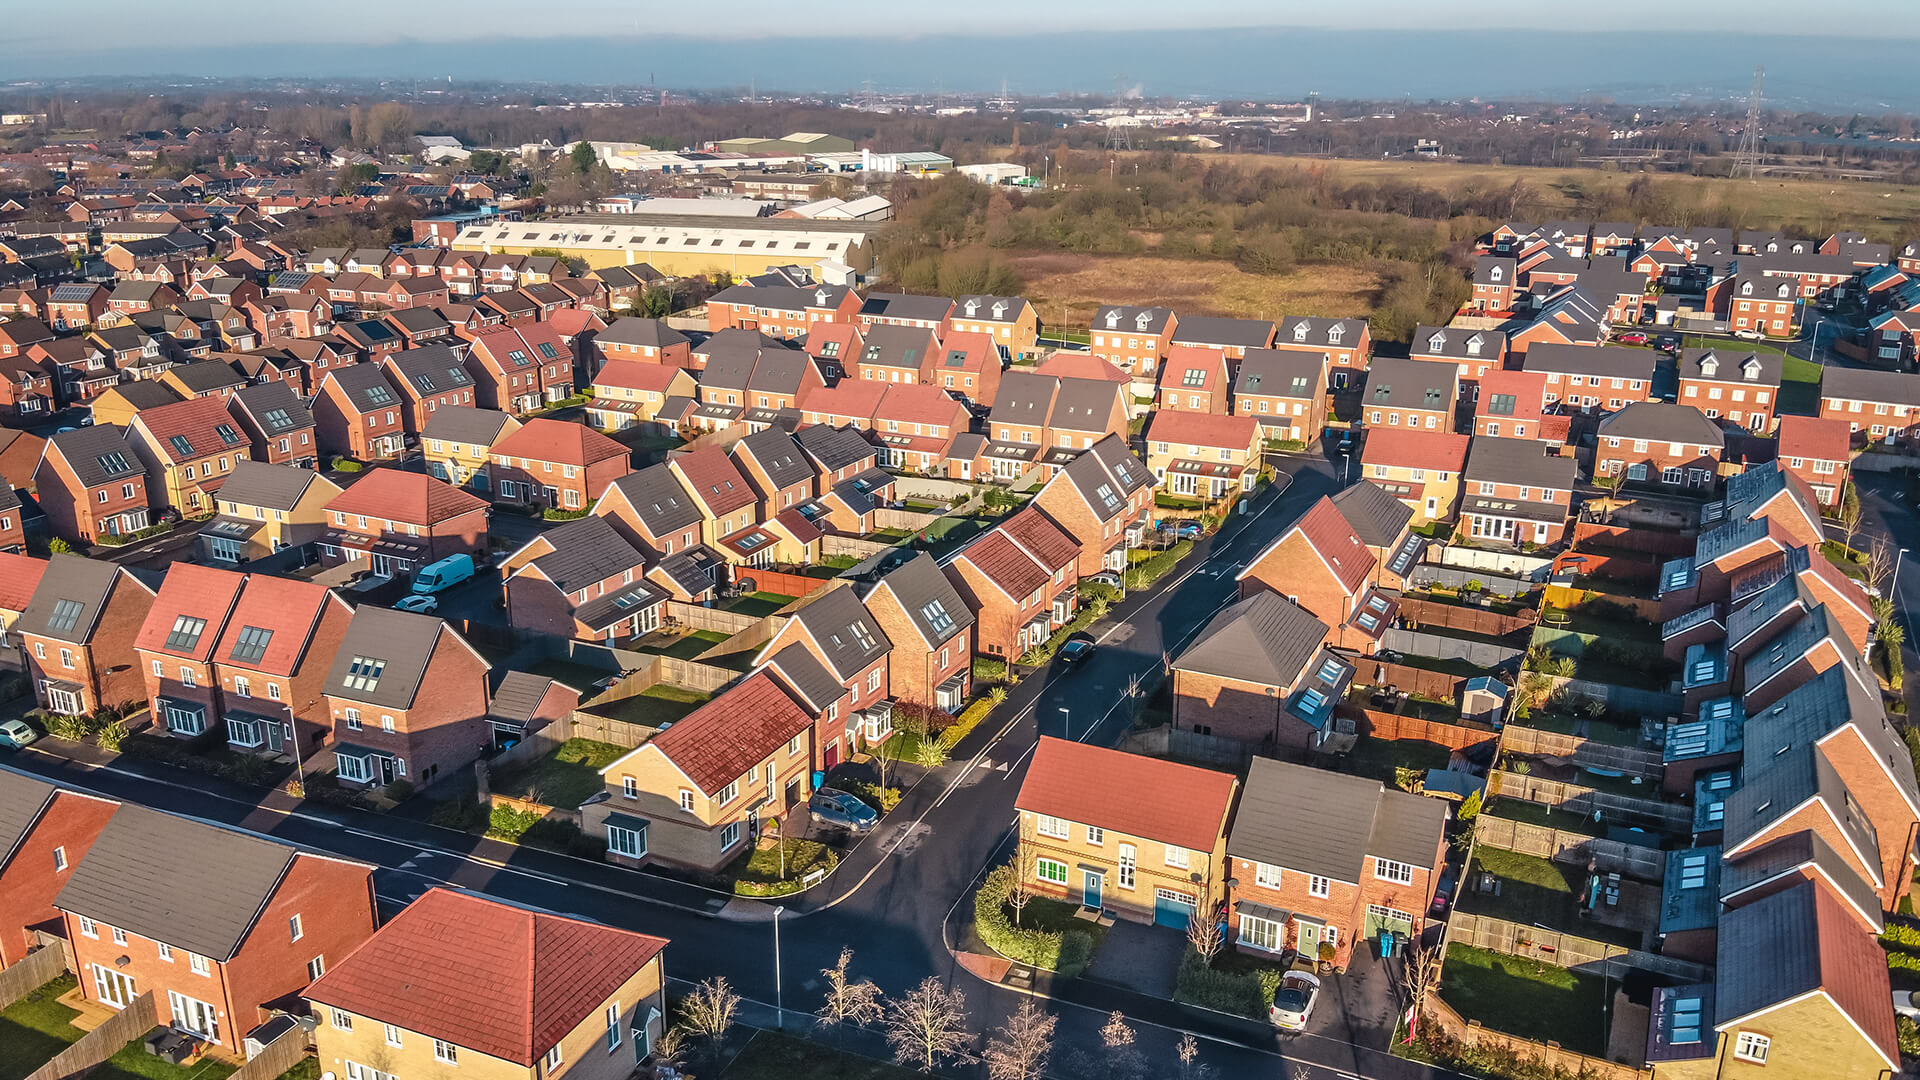 Drone view of a housing estate in the UK